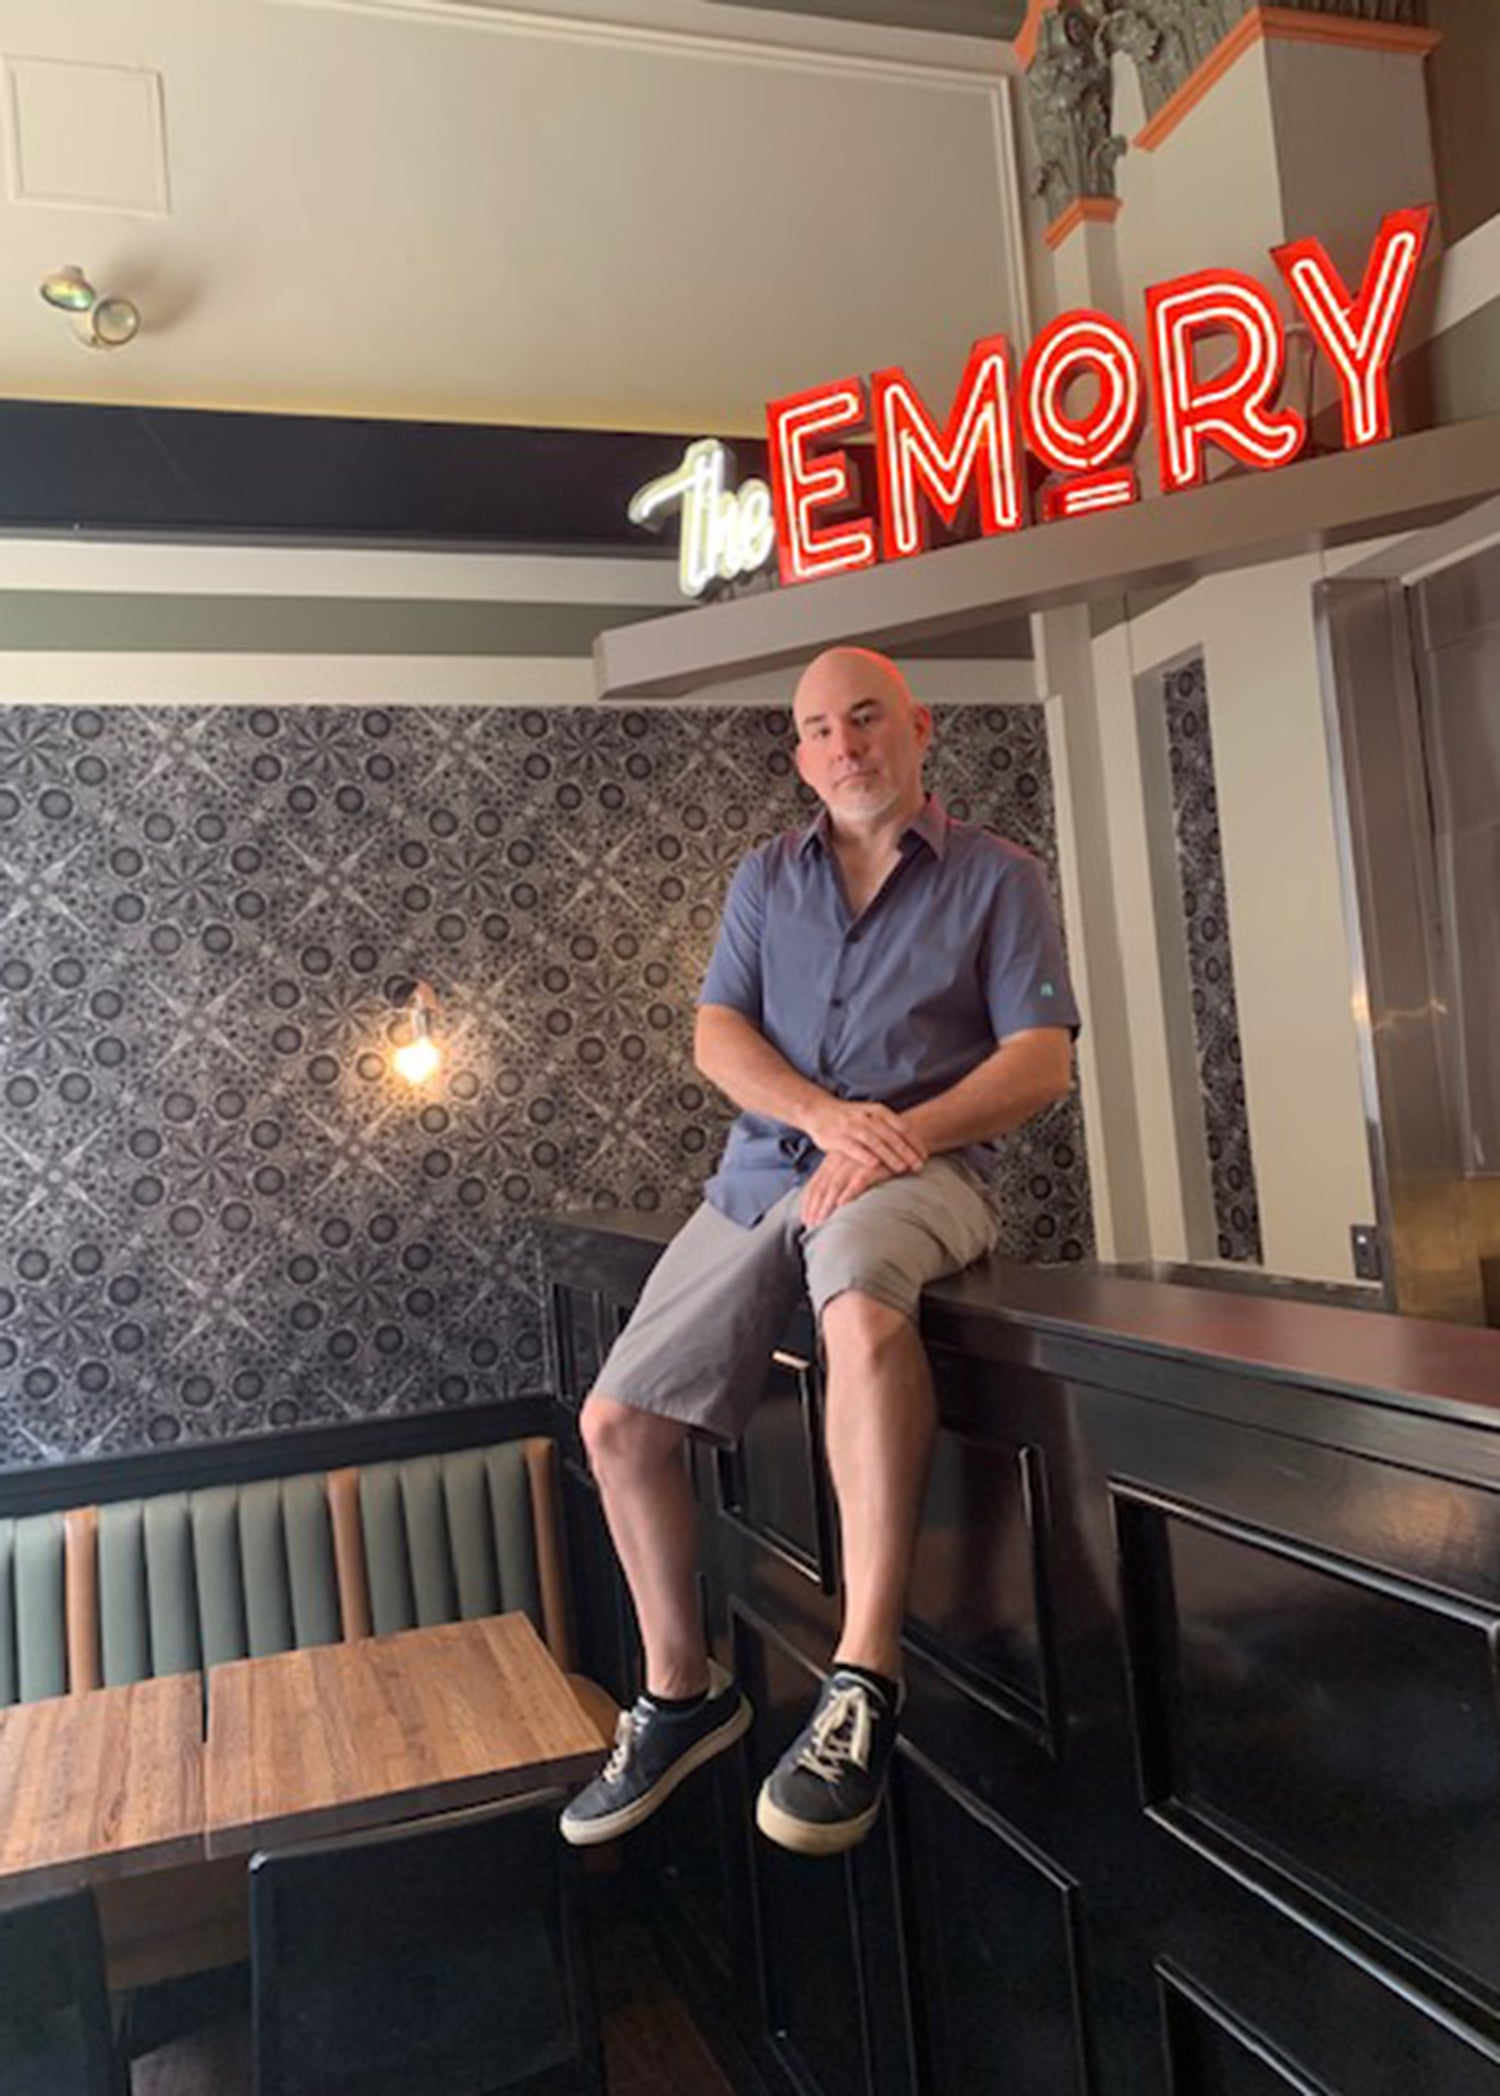 Andy Kilgore, owner of The Emory